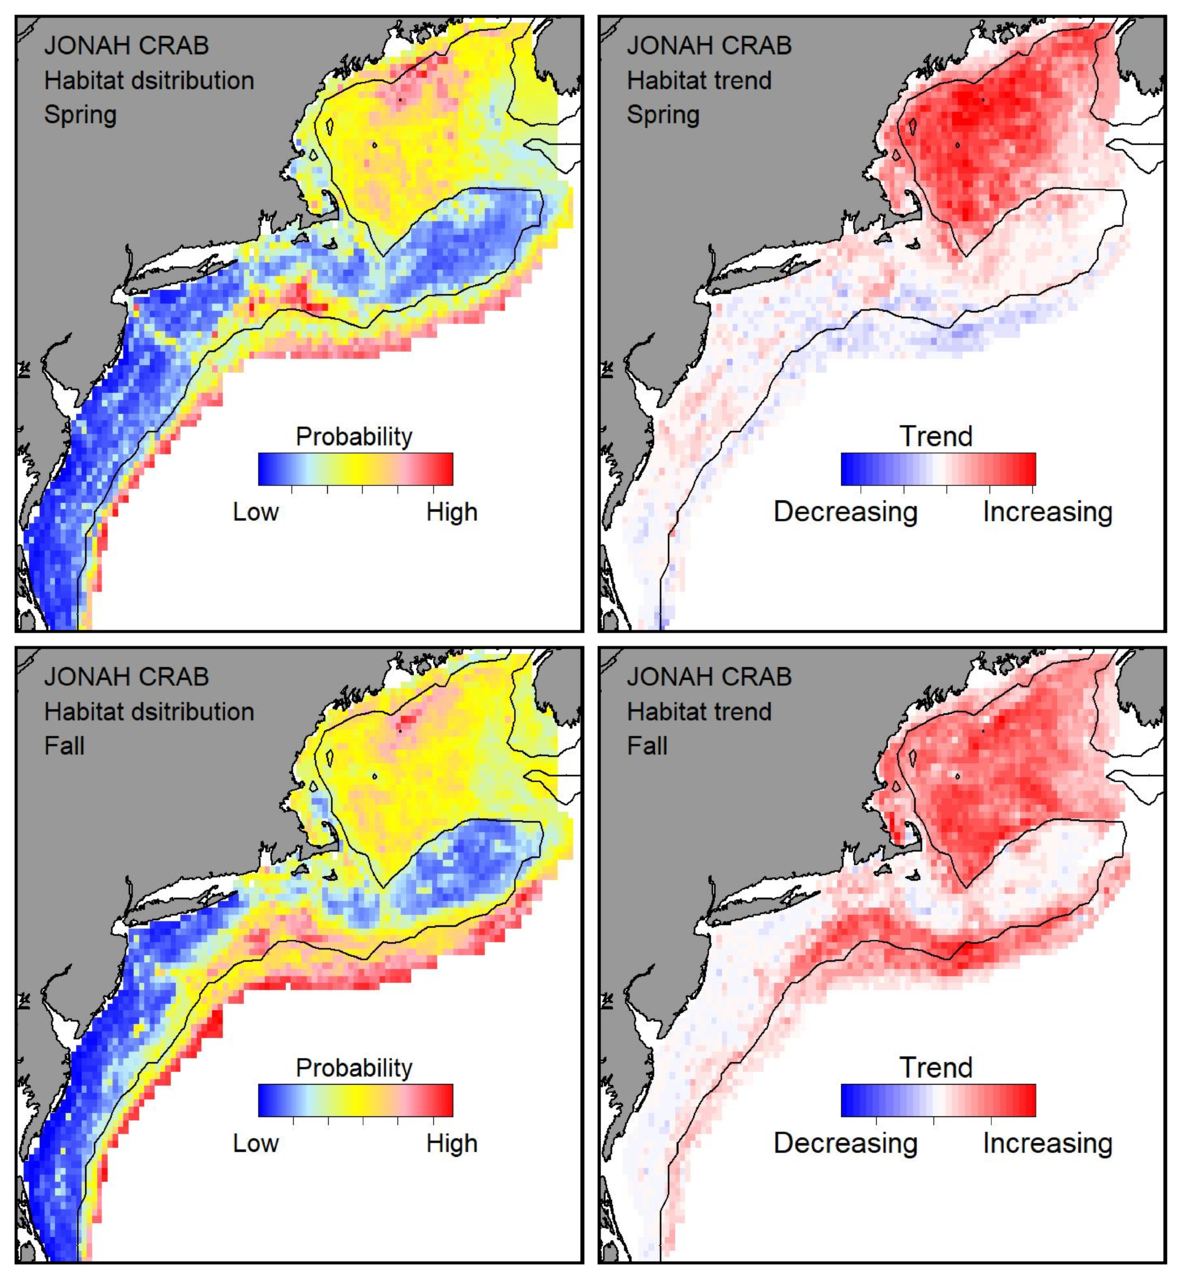 Probable habitat distribution for Jonah crab showing the highest concentration and increasing trend in the Gulf of Maine during the spring. Bottom row: Probable habitat distribution for Jonah crab showing the highest concentration and increasing trend in the Gulf of Maine during the fall.